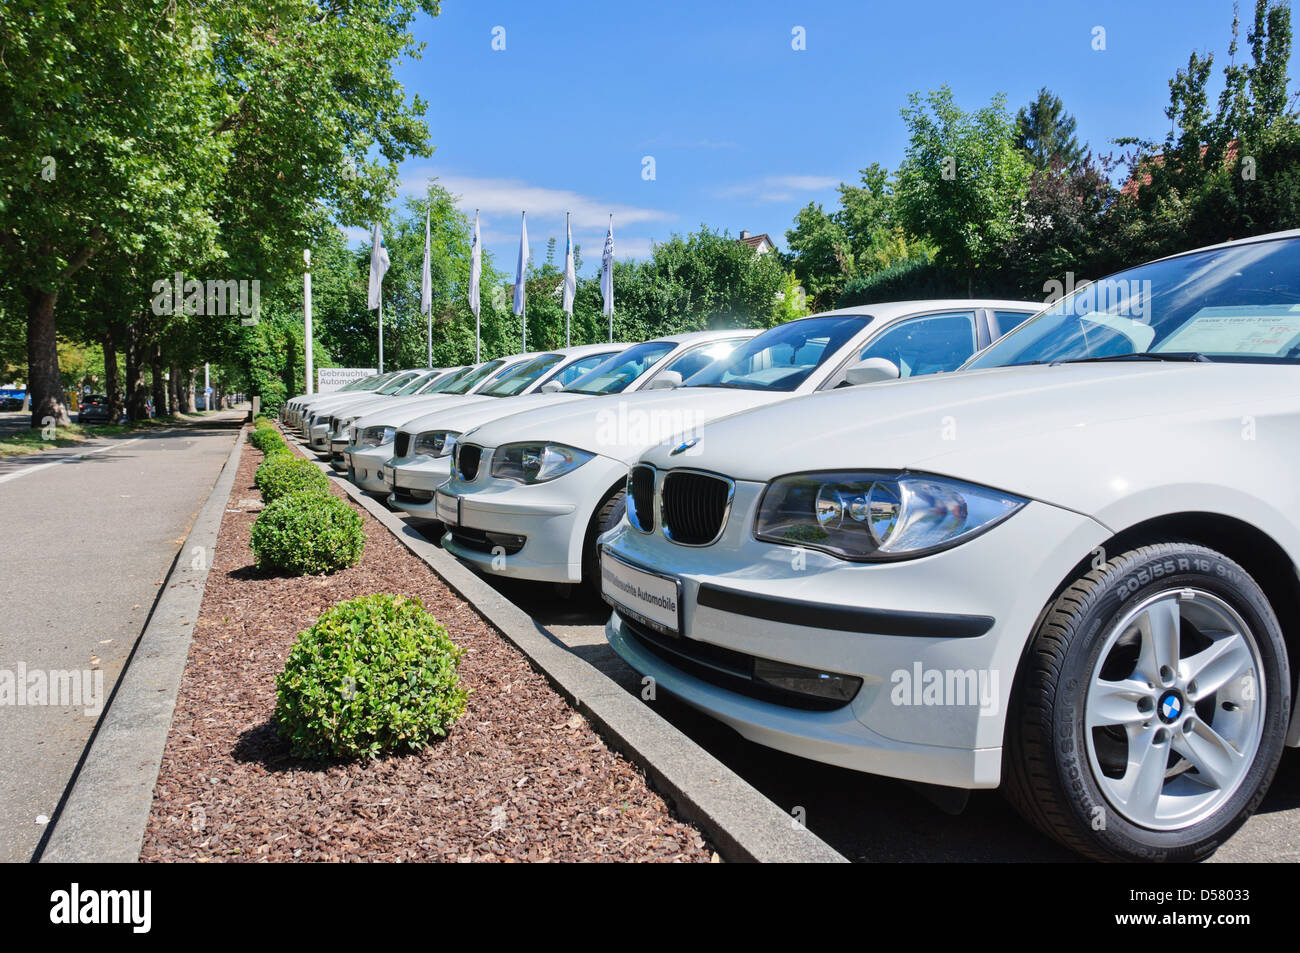 Row Of Many White BMW Luxury Cars Displayed For Sale From A BMW Car Dealer    Heilbronn, Germany